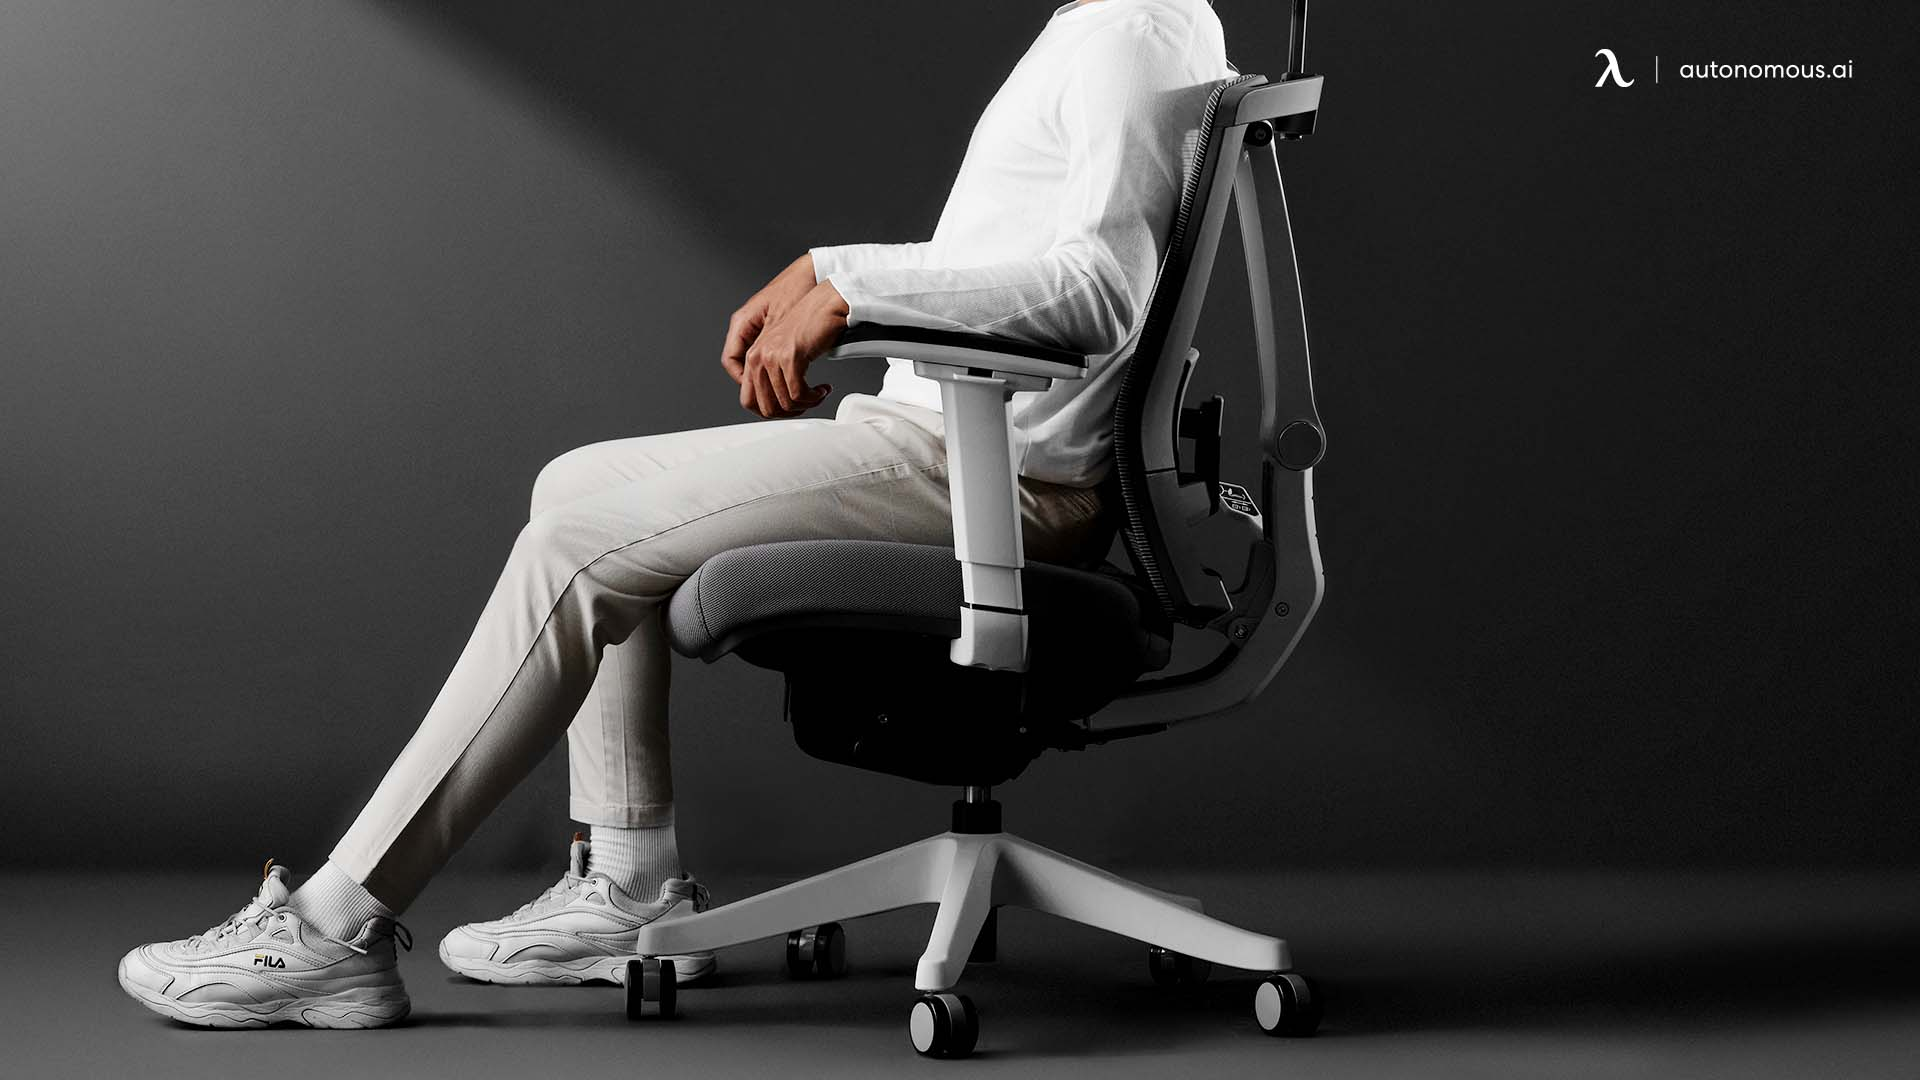 Types of Lumbar Support for Office Chairs